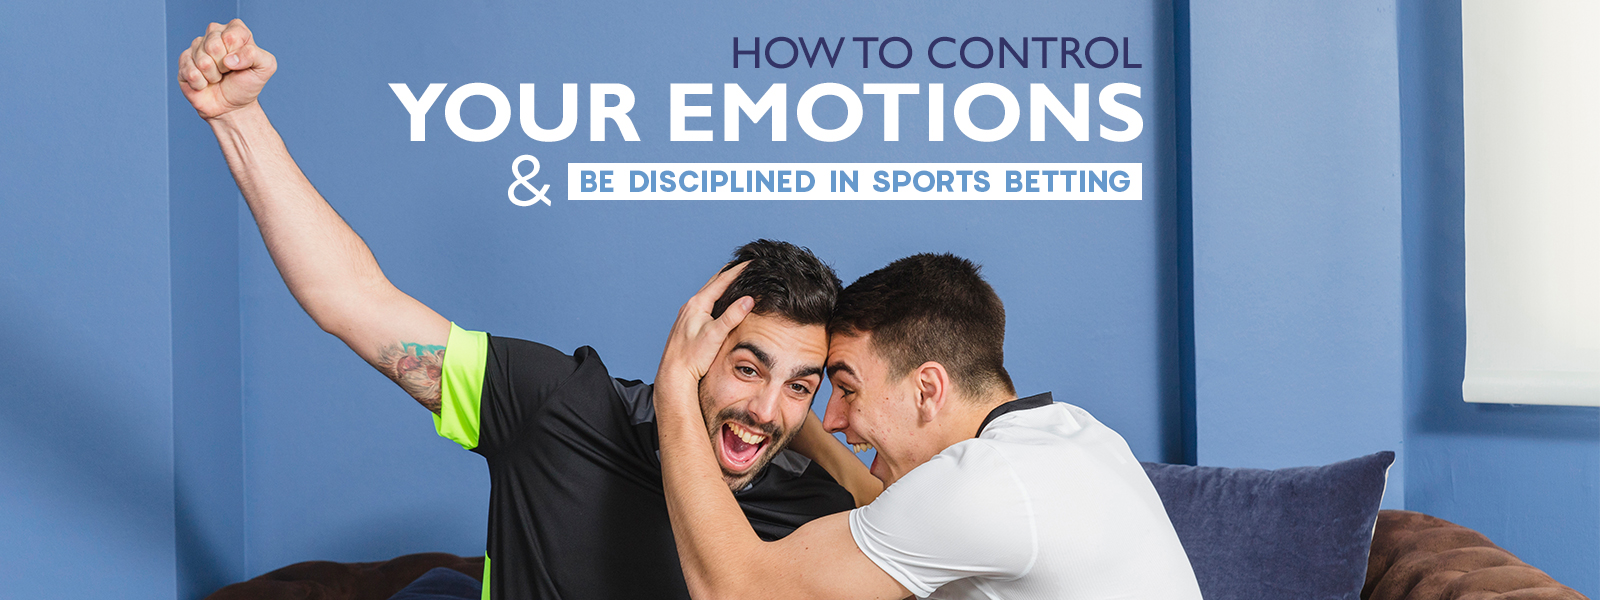 Control Your Emotions and Be Disciplined In Sports Betting